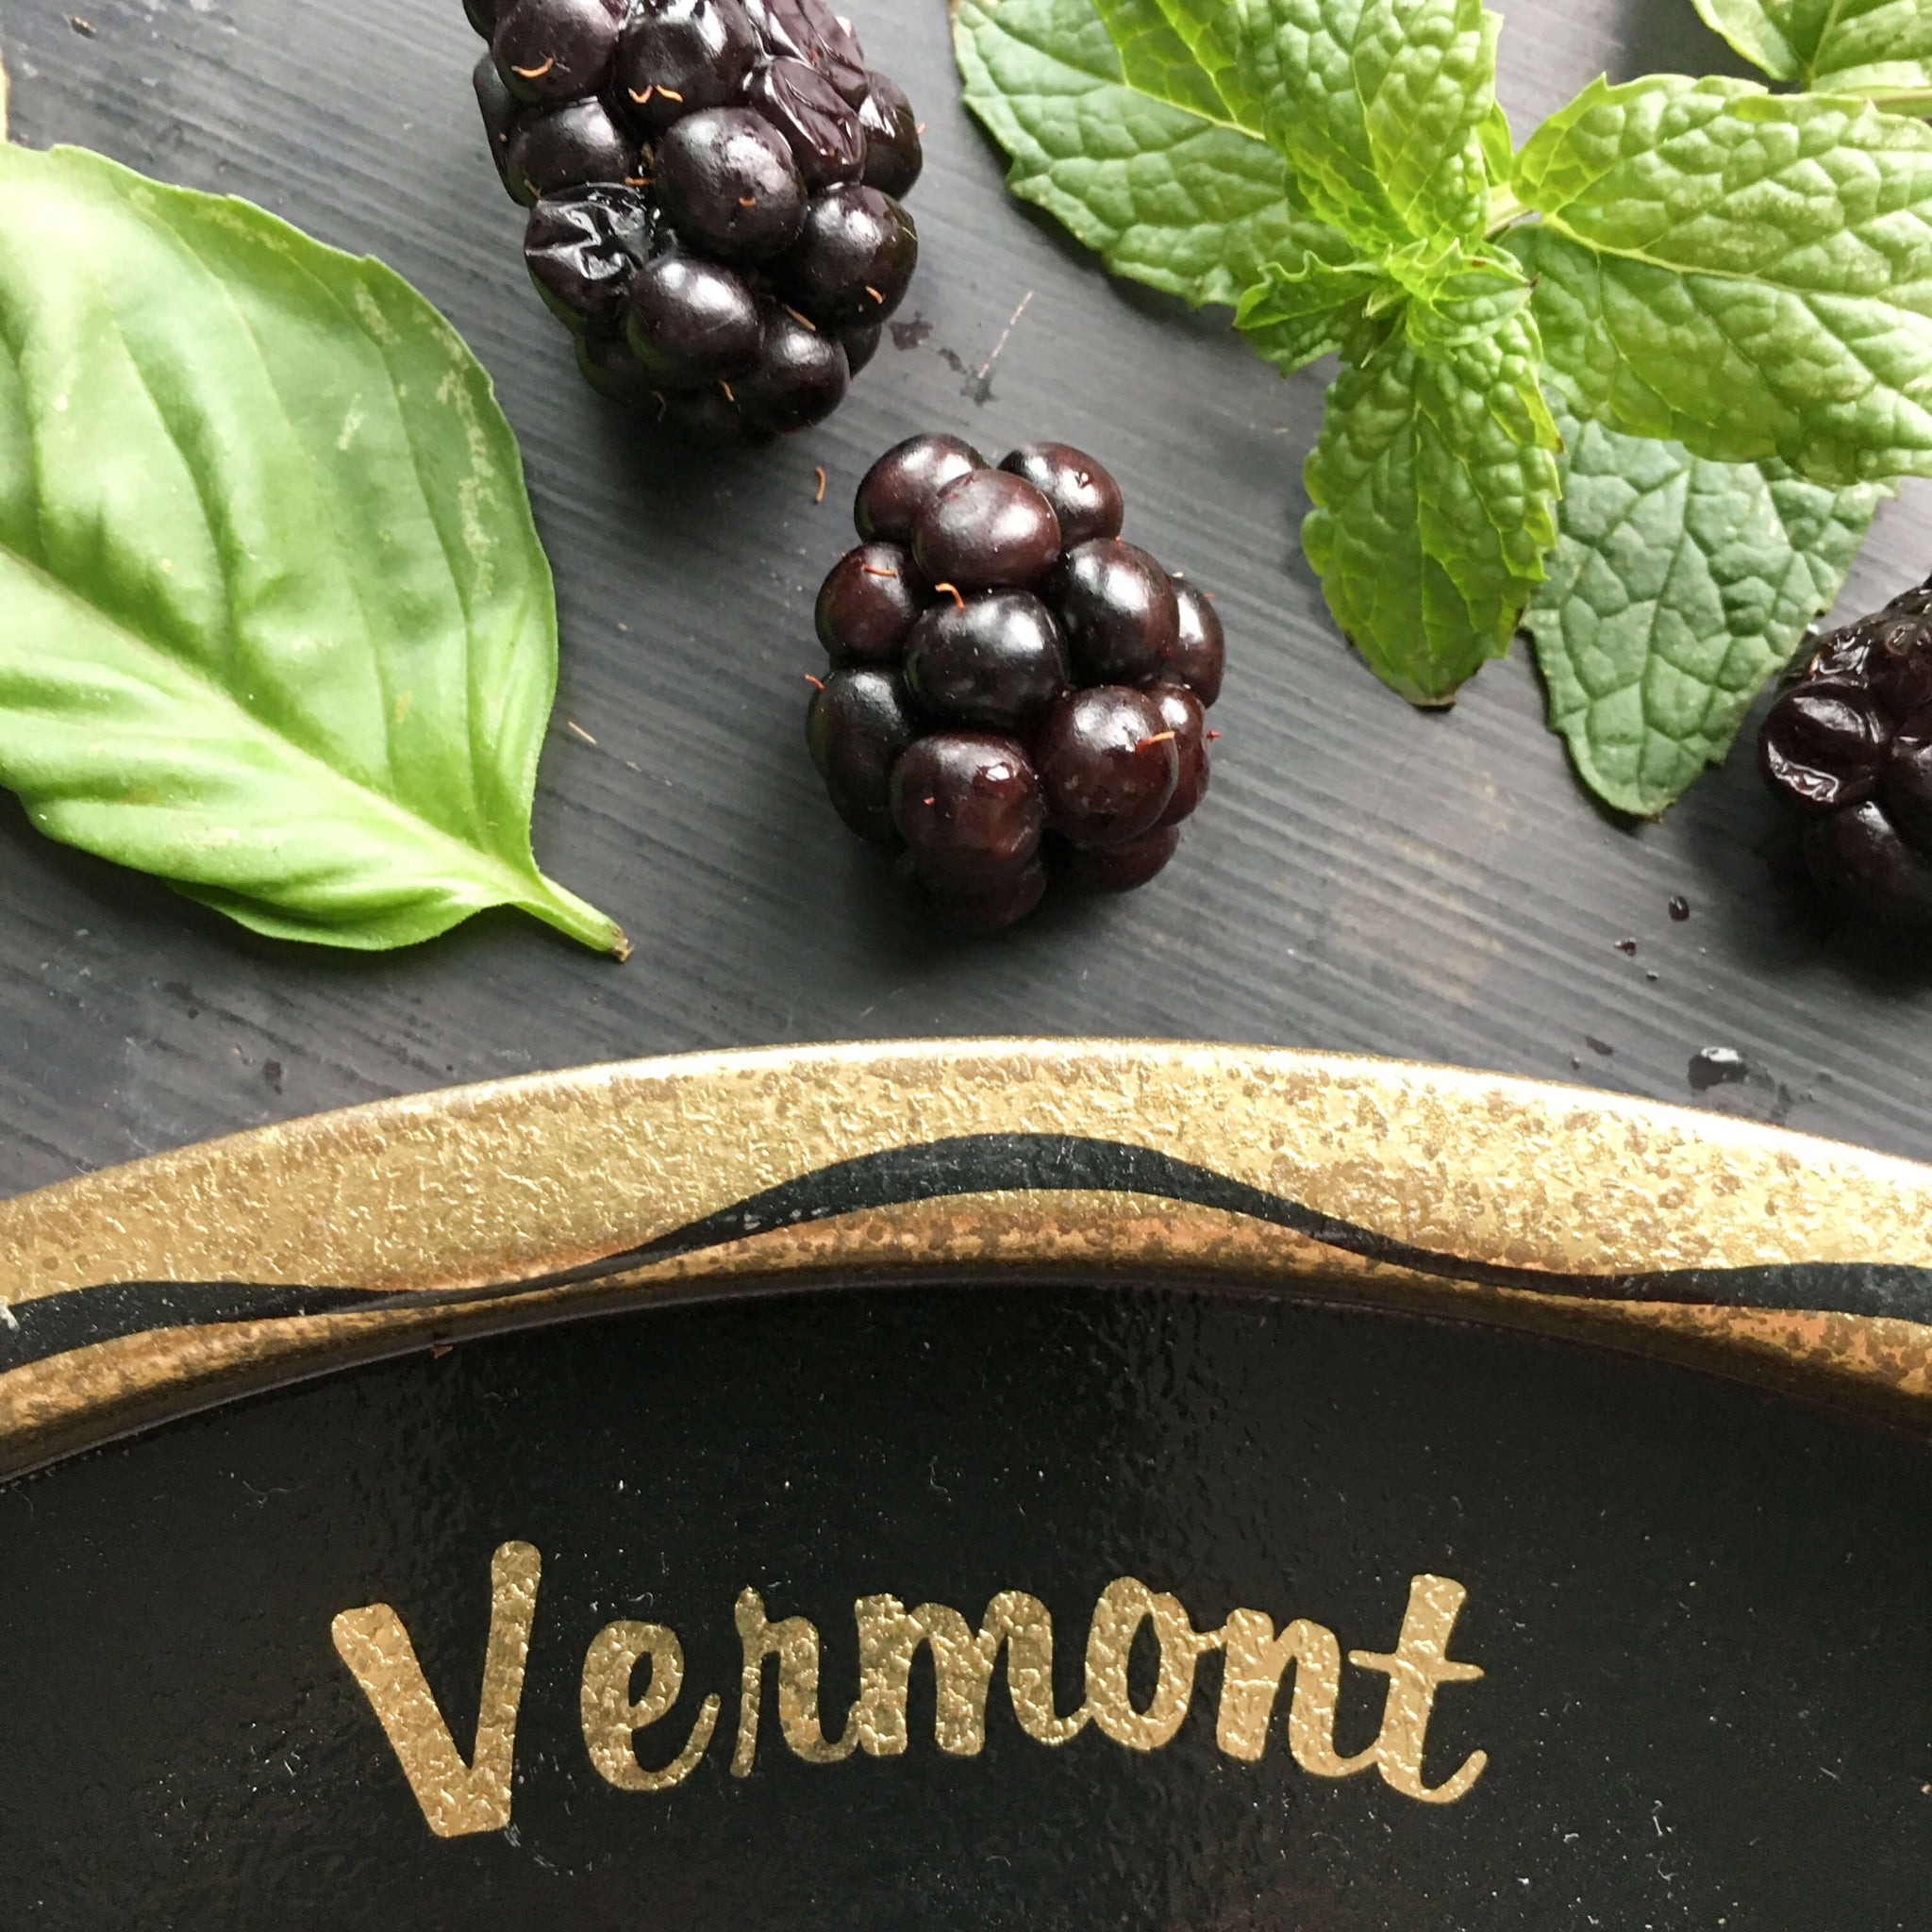 Vintage 1960's Vermont New Hampshire Tin Tray - Travel Souvenir - Black and Gold Travel Collectibles